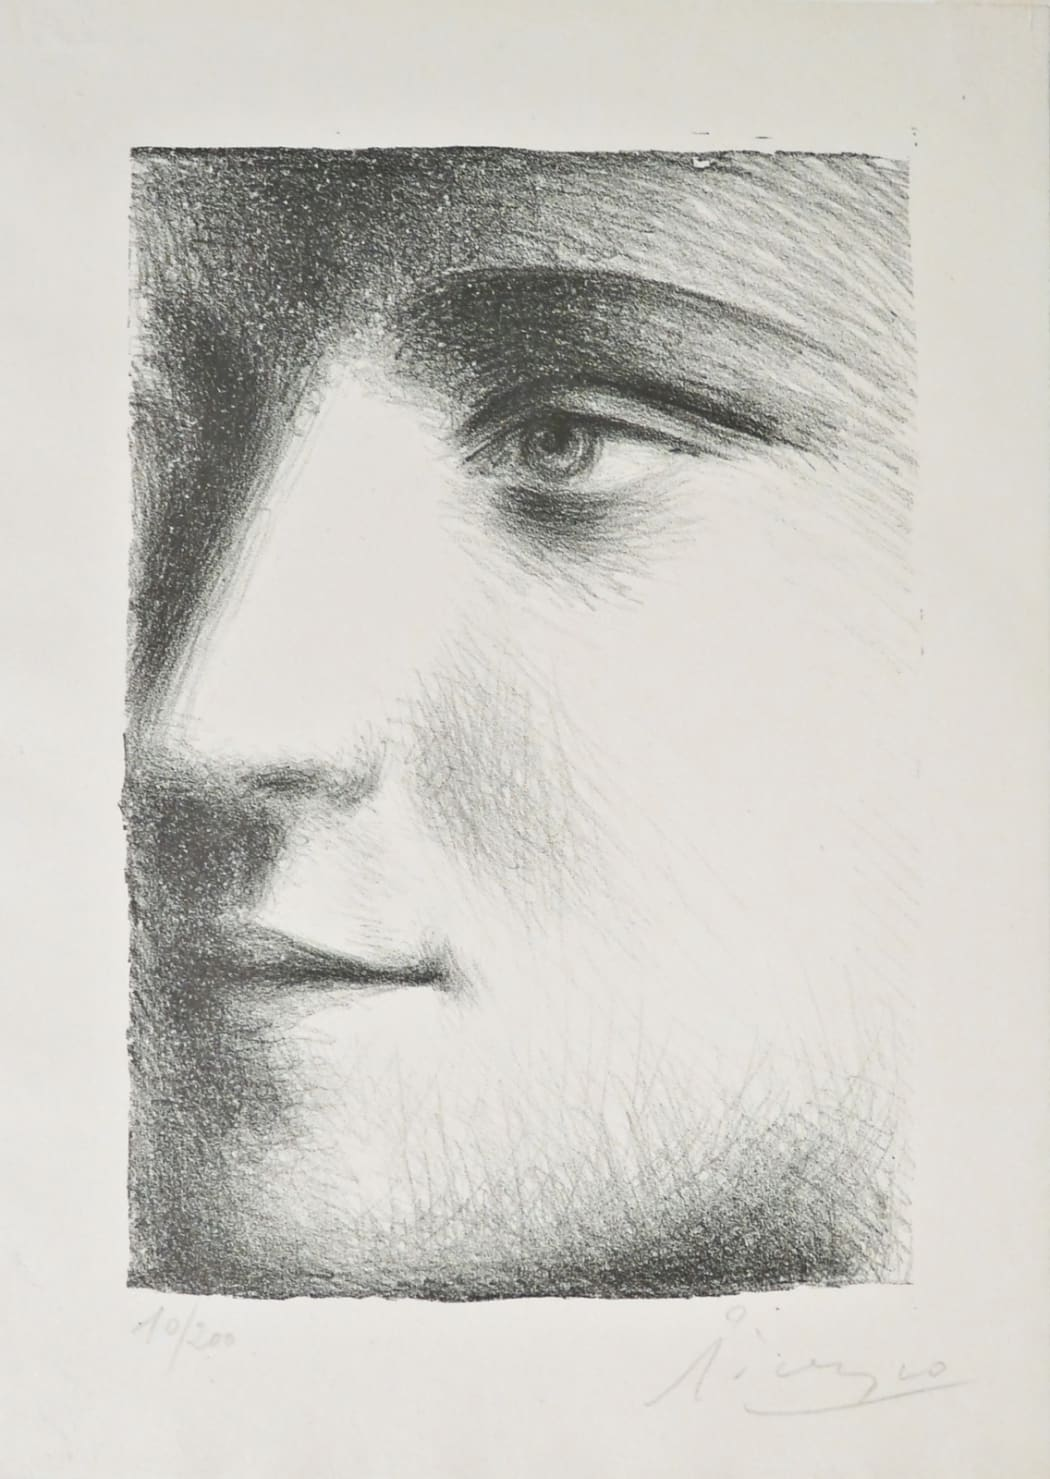 Visage de Marie-Thérèse B95, 1928 (Probably October, Paris), lithograph, 20 3/8 x 13 1/8 inches